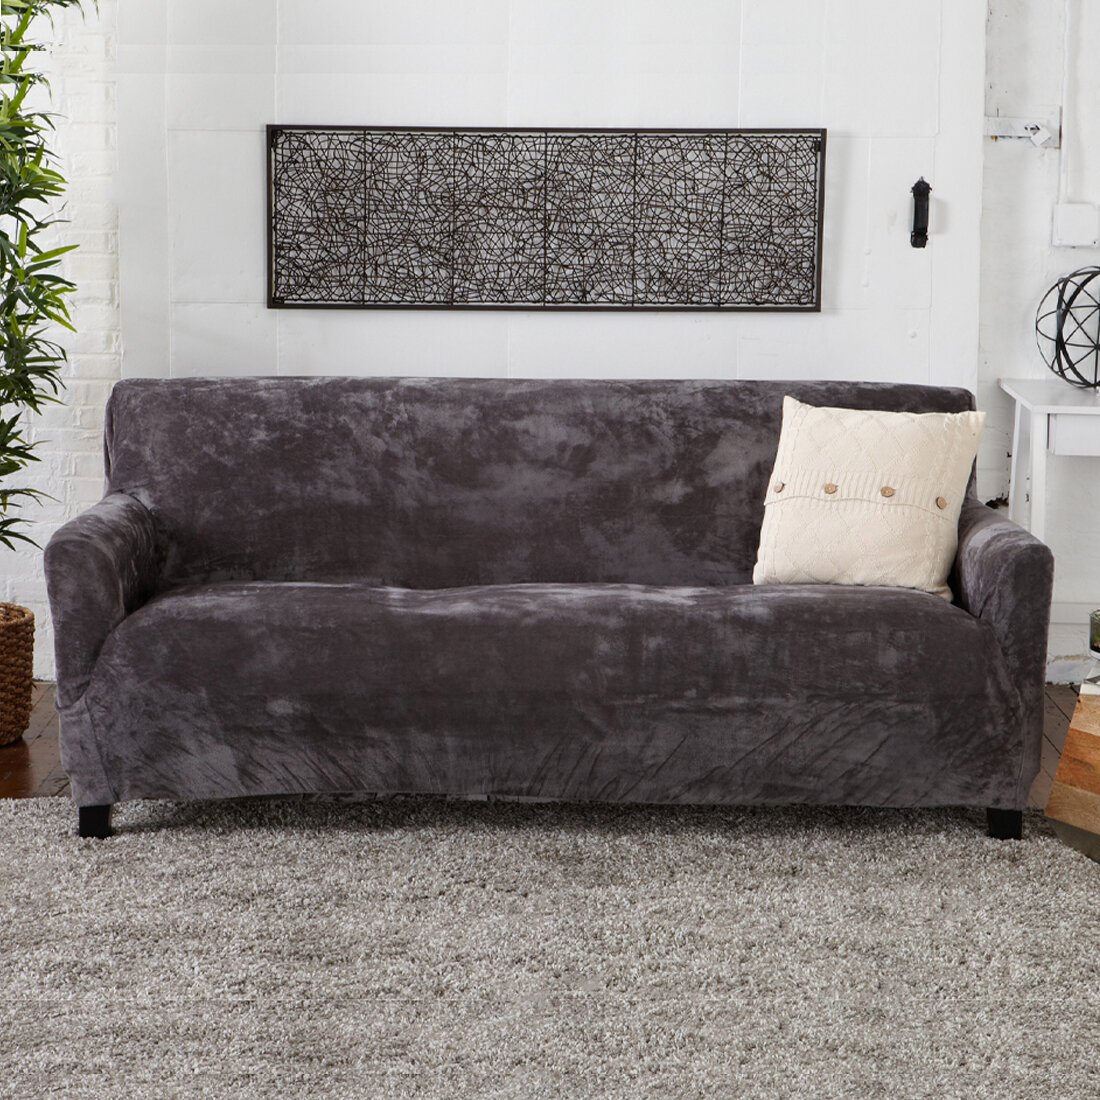 2 Piece Stretch Fabric Form Fit Solid Grey Couch Sofa Loveseat Cover Set Home Garden Slipcovers